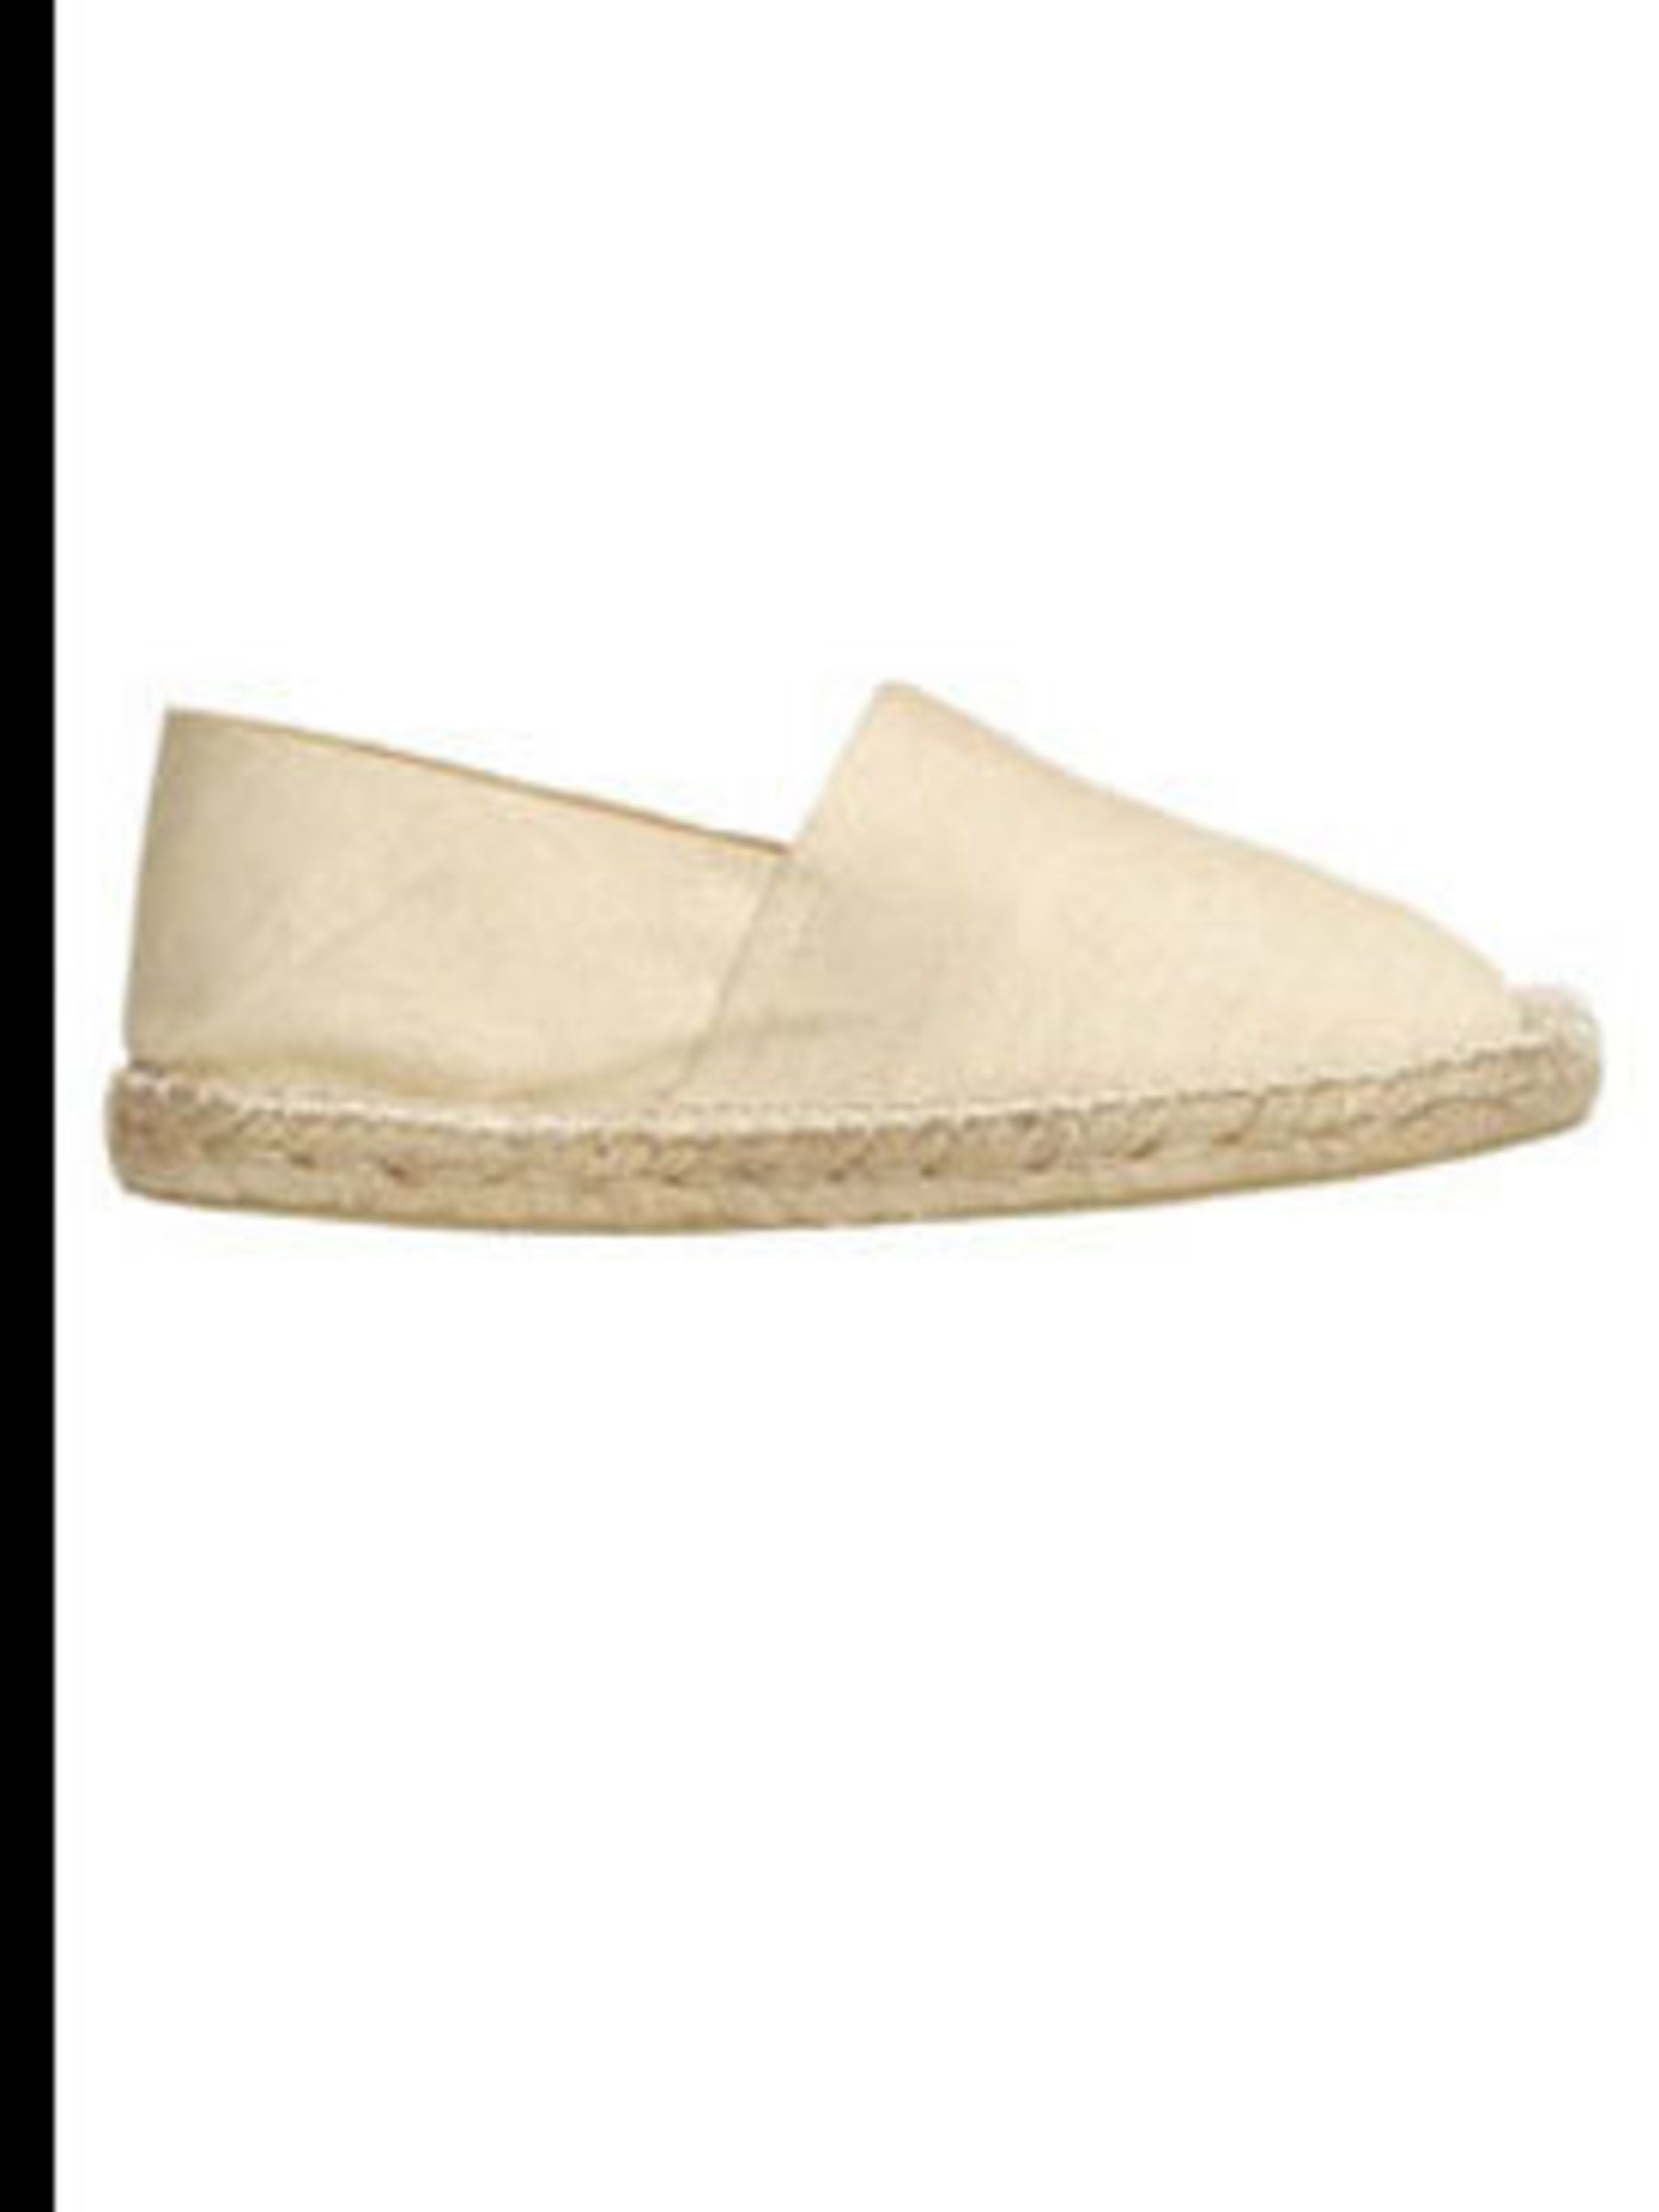 """<p>Beige espadrilles, £15, by <a href=""""http://www.toast.co.uk/product/shoes/F1ES1/canvas+espadrille.htm?categoryref=%2Fcategory2.aspx%3Fcategoryid%3Dshoes%26seoterm%3Dshoes%26nopaging%3Dtrue%26"""">Toast</a></p>"""